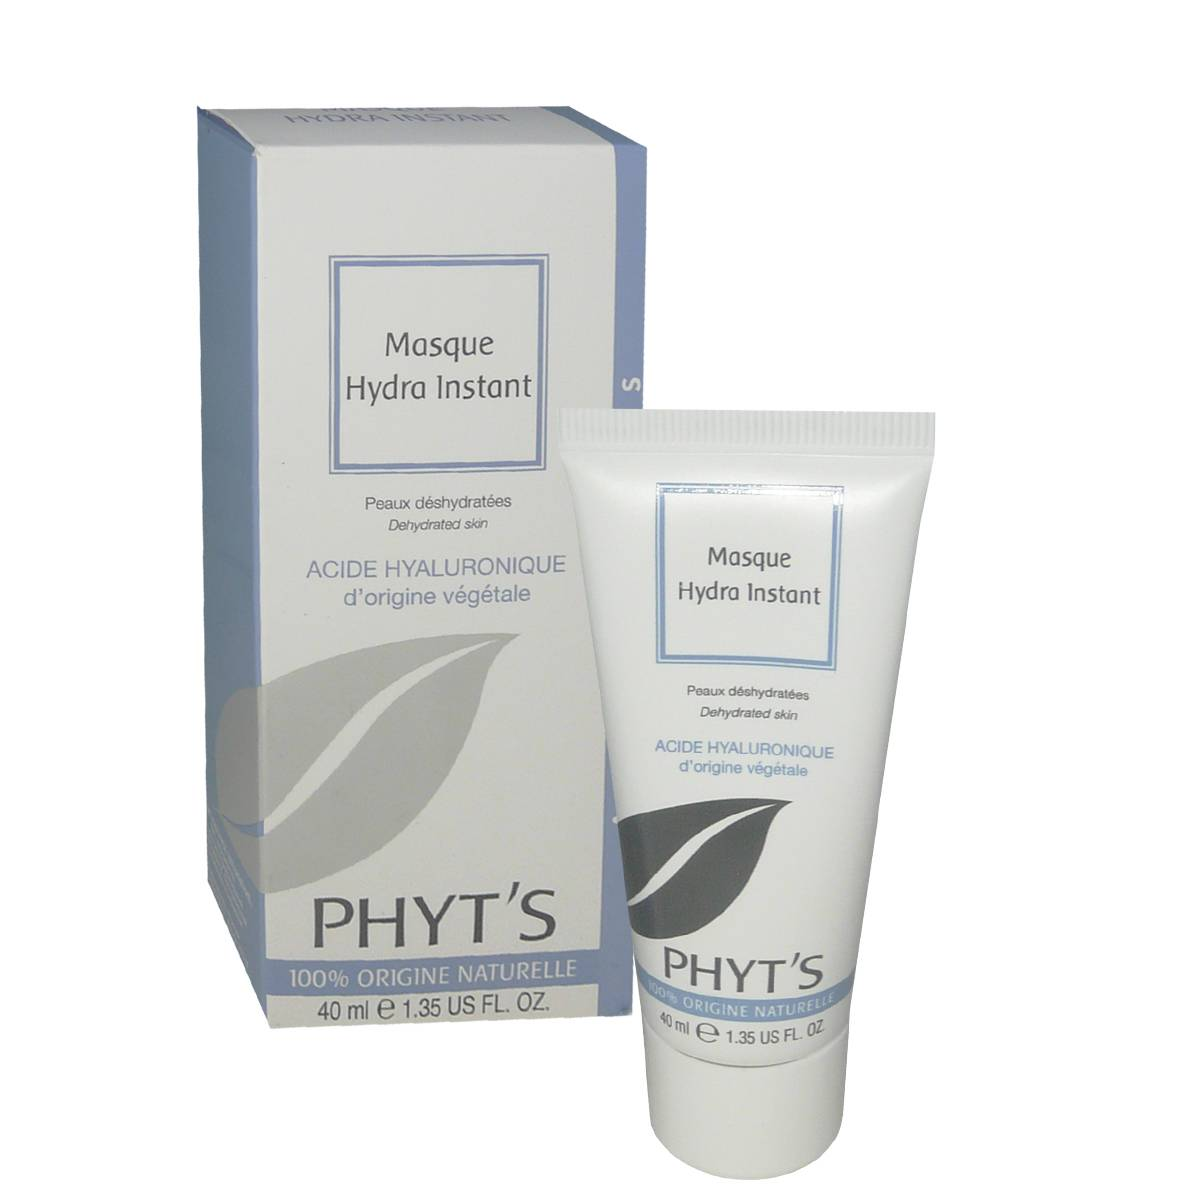 Phyt's masque hydra-instant 40 ml acide hyaluronique